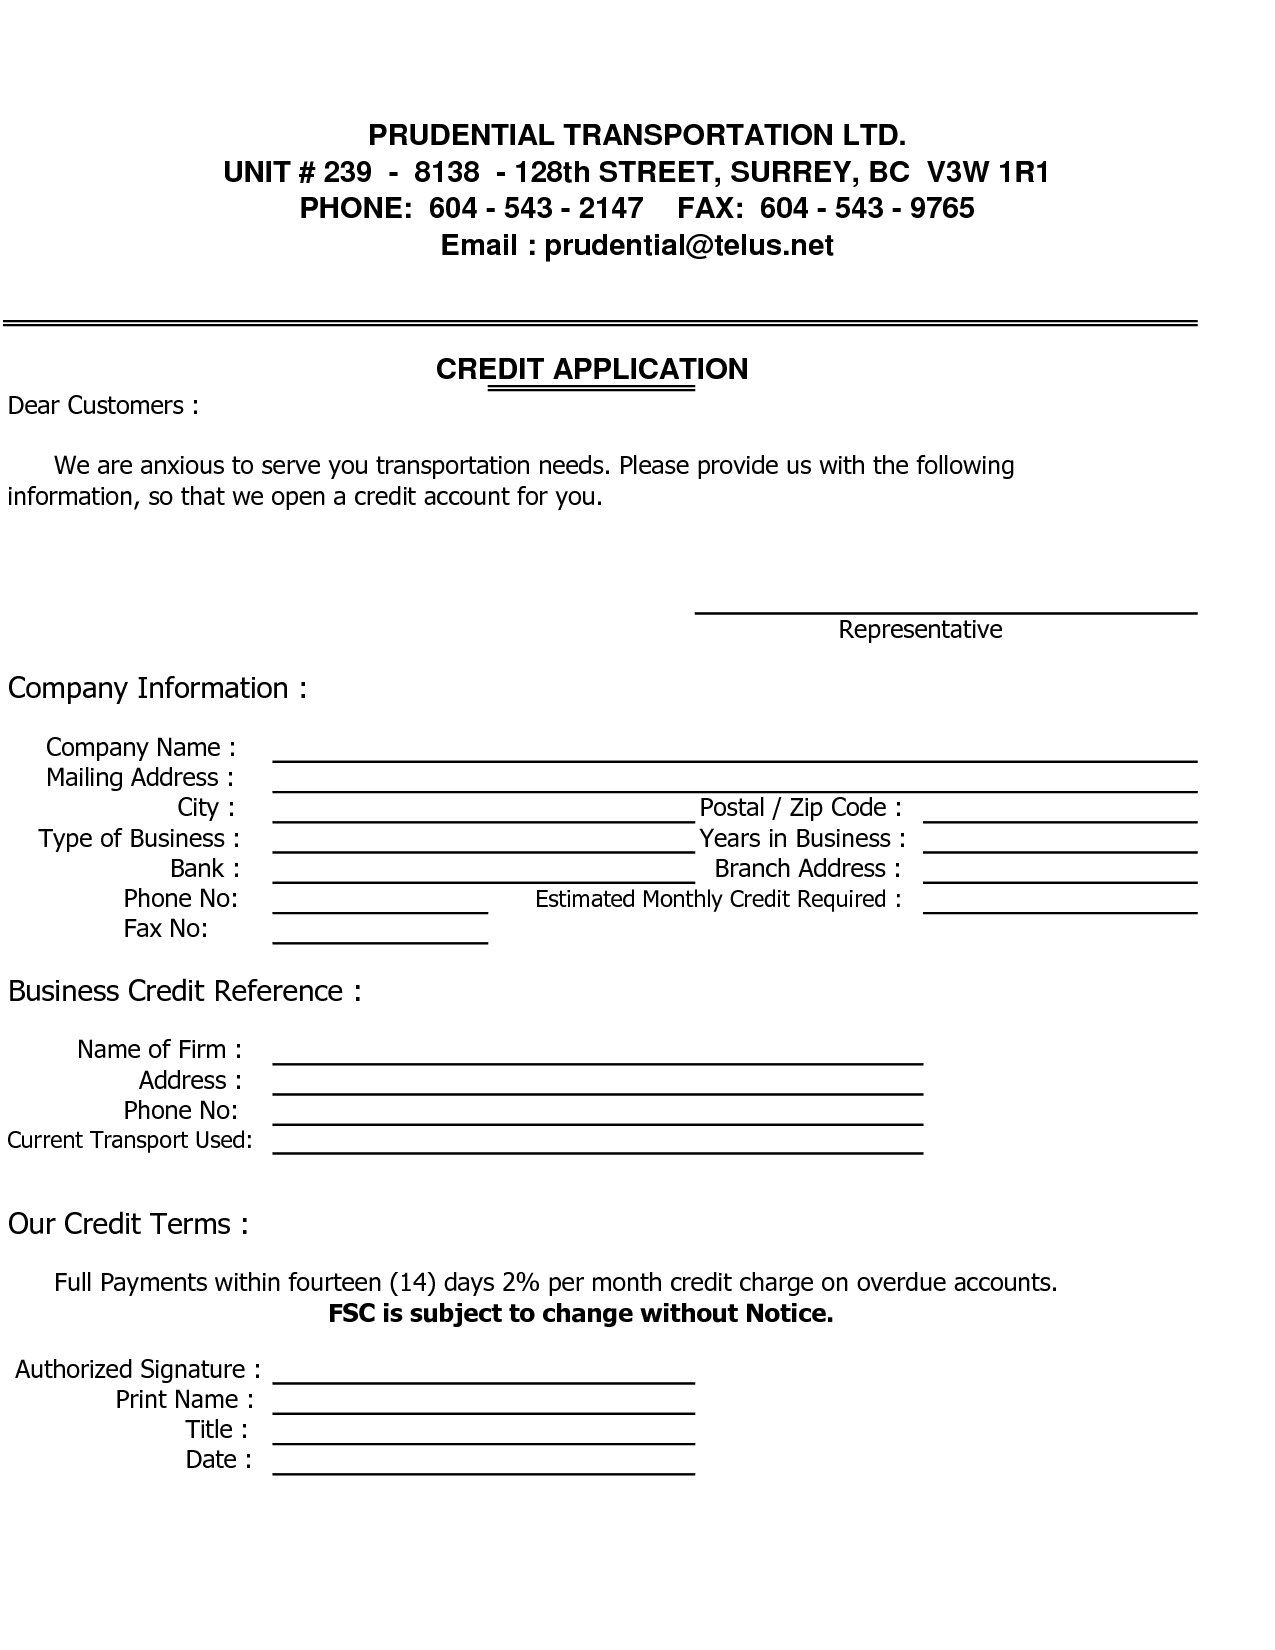 business credit reference form   Kleo.beachfix.co